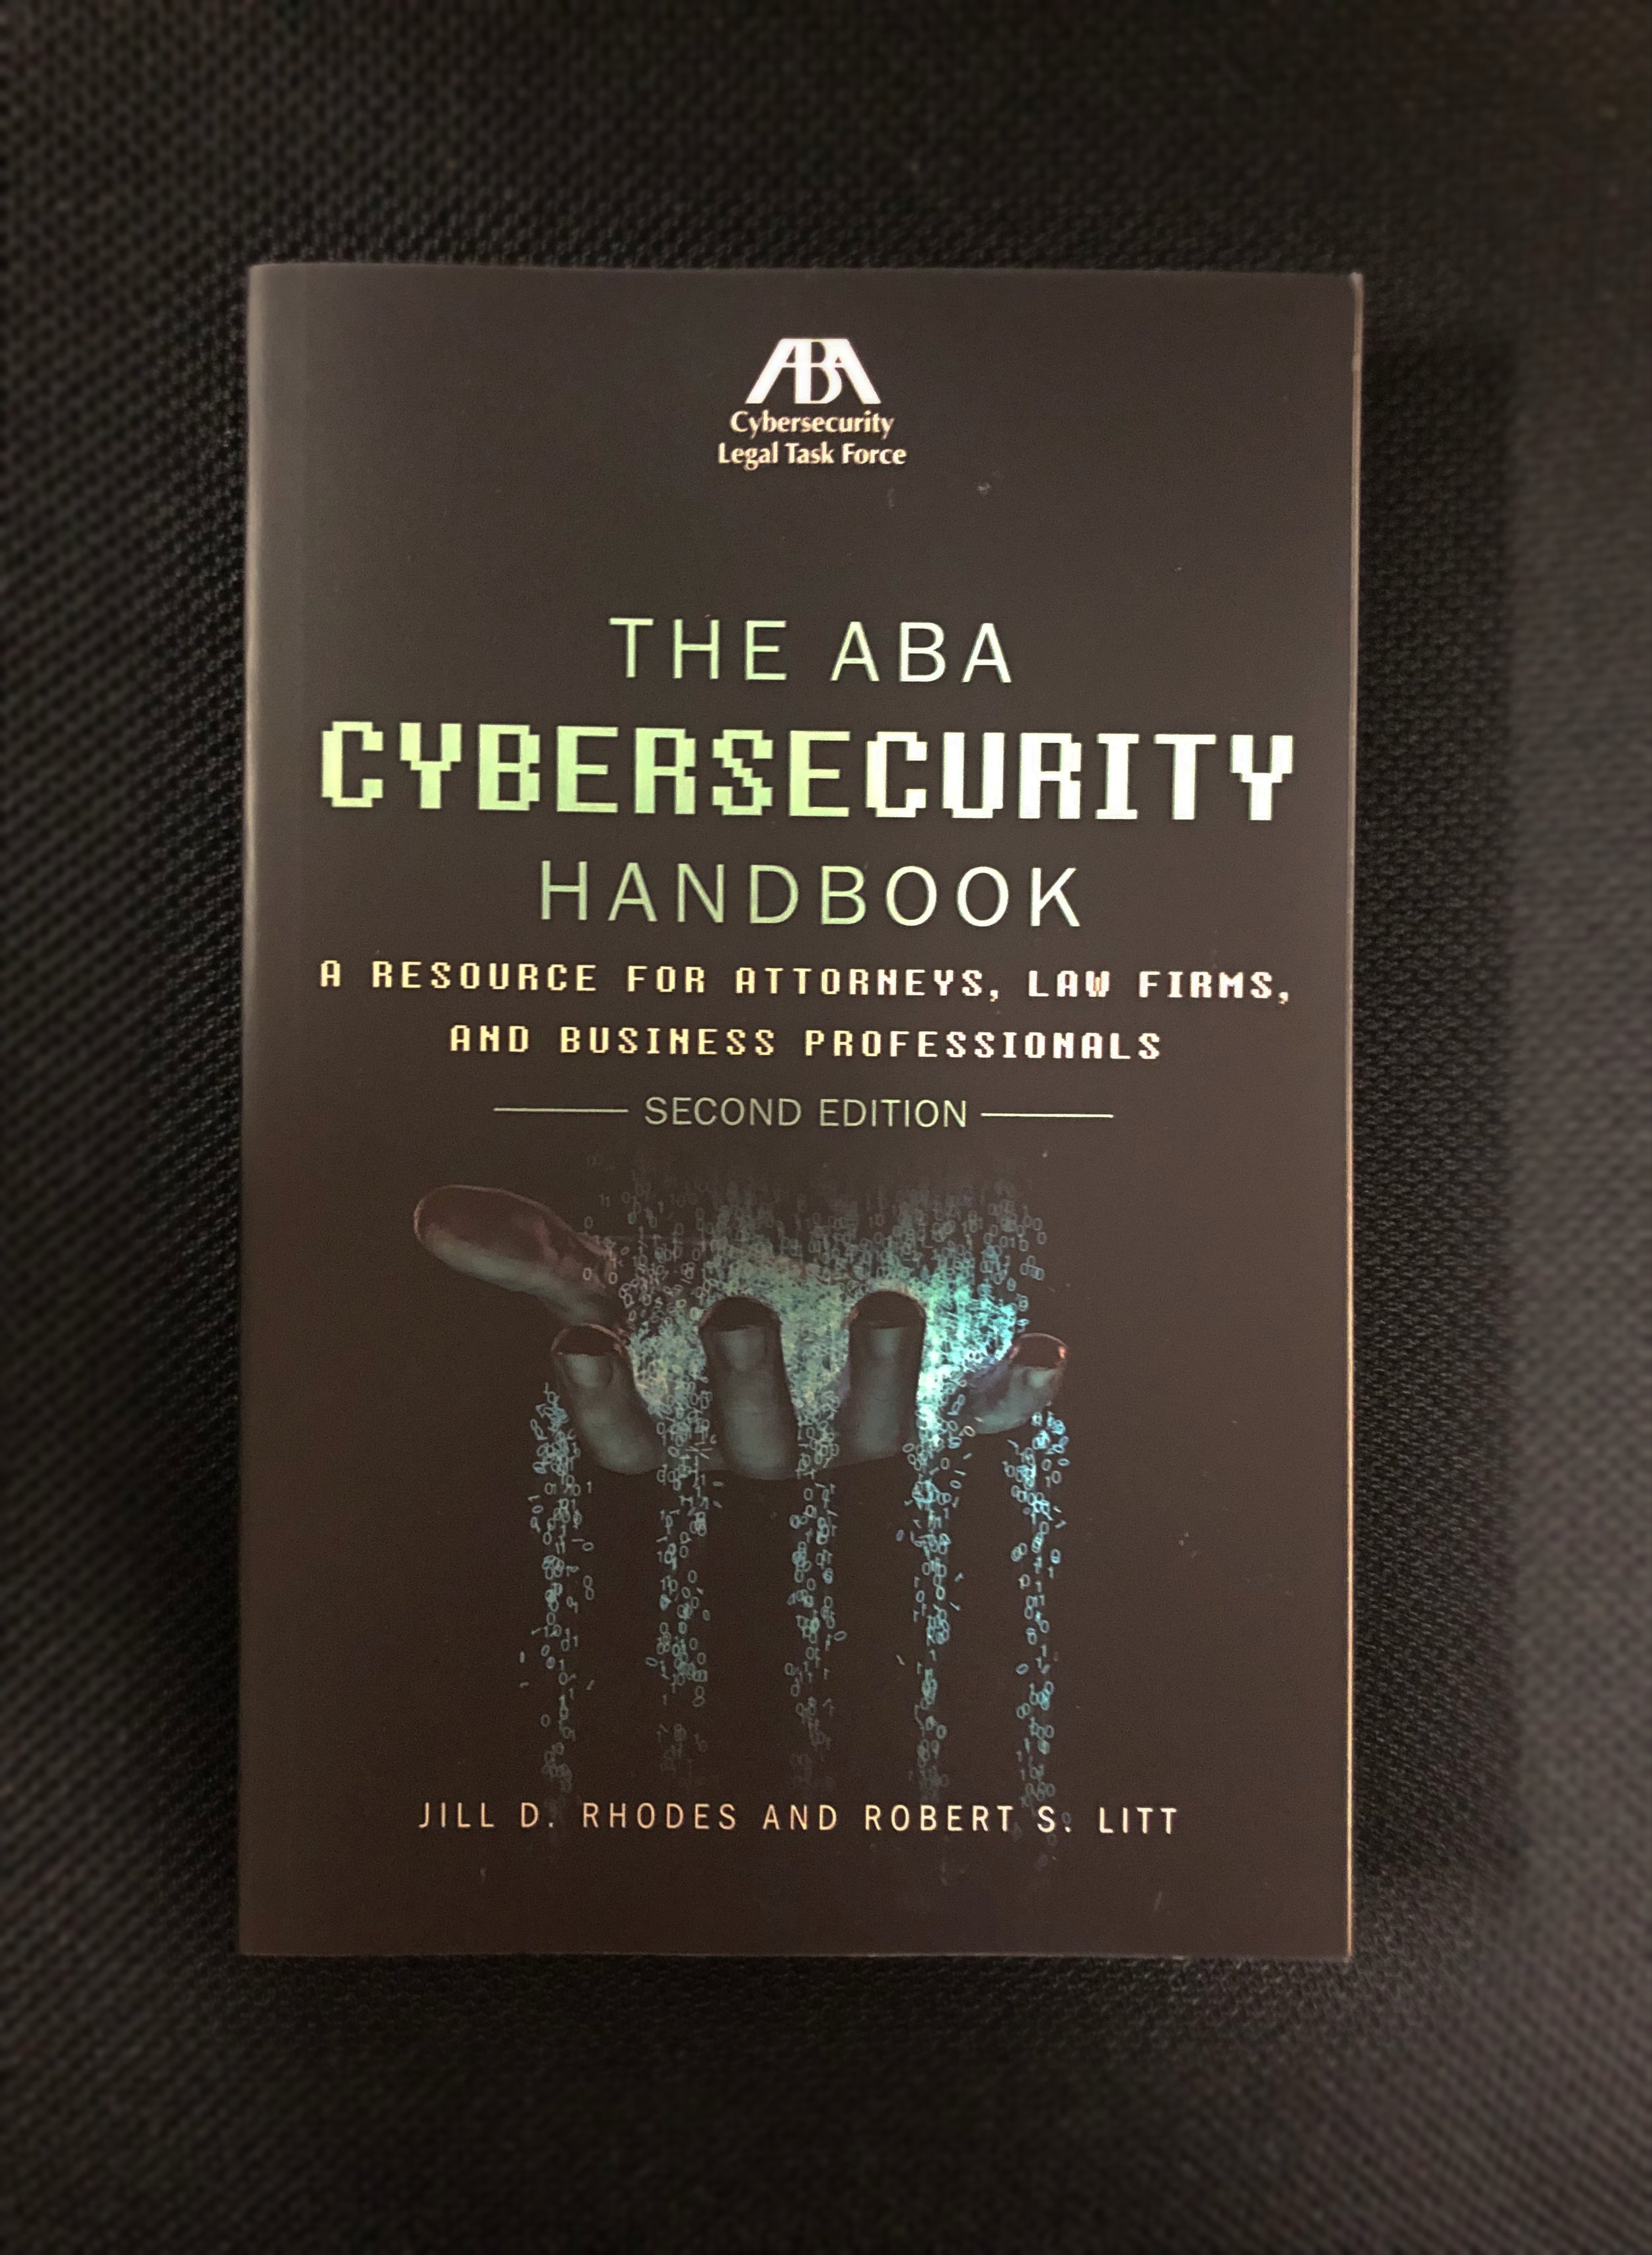 Edited by Jill D. Rhodes and Robert S. Litt  Published by American Bar Association. Cybersecurity Legal Task Force.  KF 318 .A7518 2017  Photo Credit: Helen Hartman